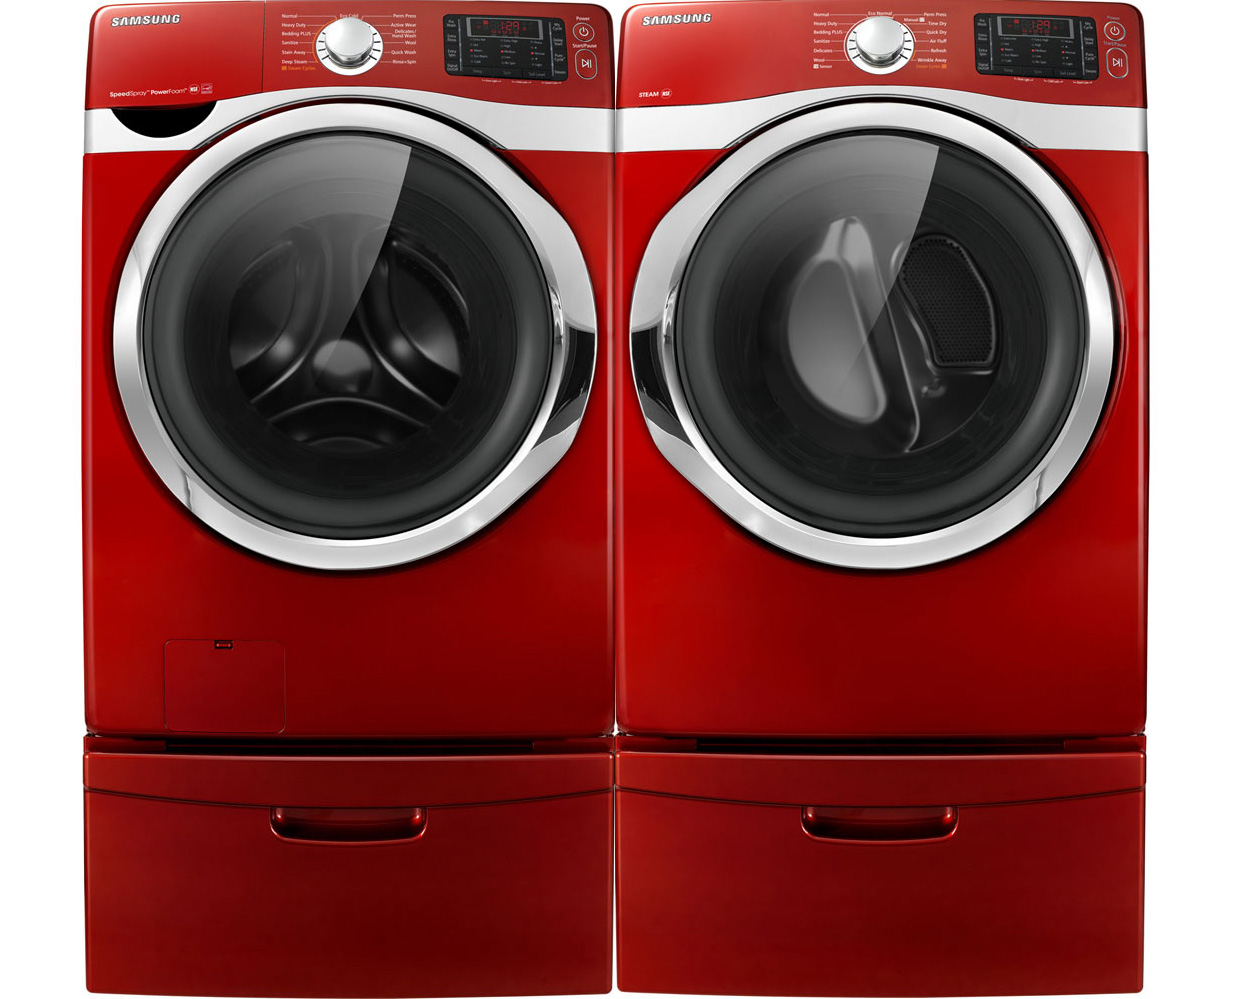 Samsung Red Steam Washer and Steam Electric Dryer Laundry ...